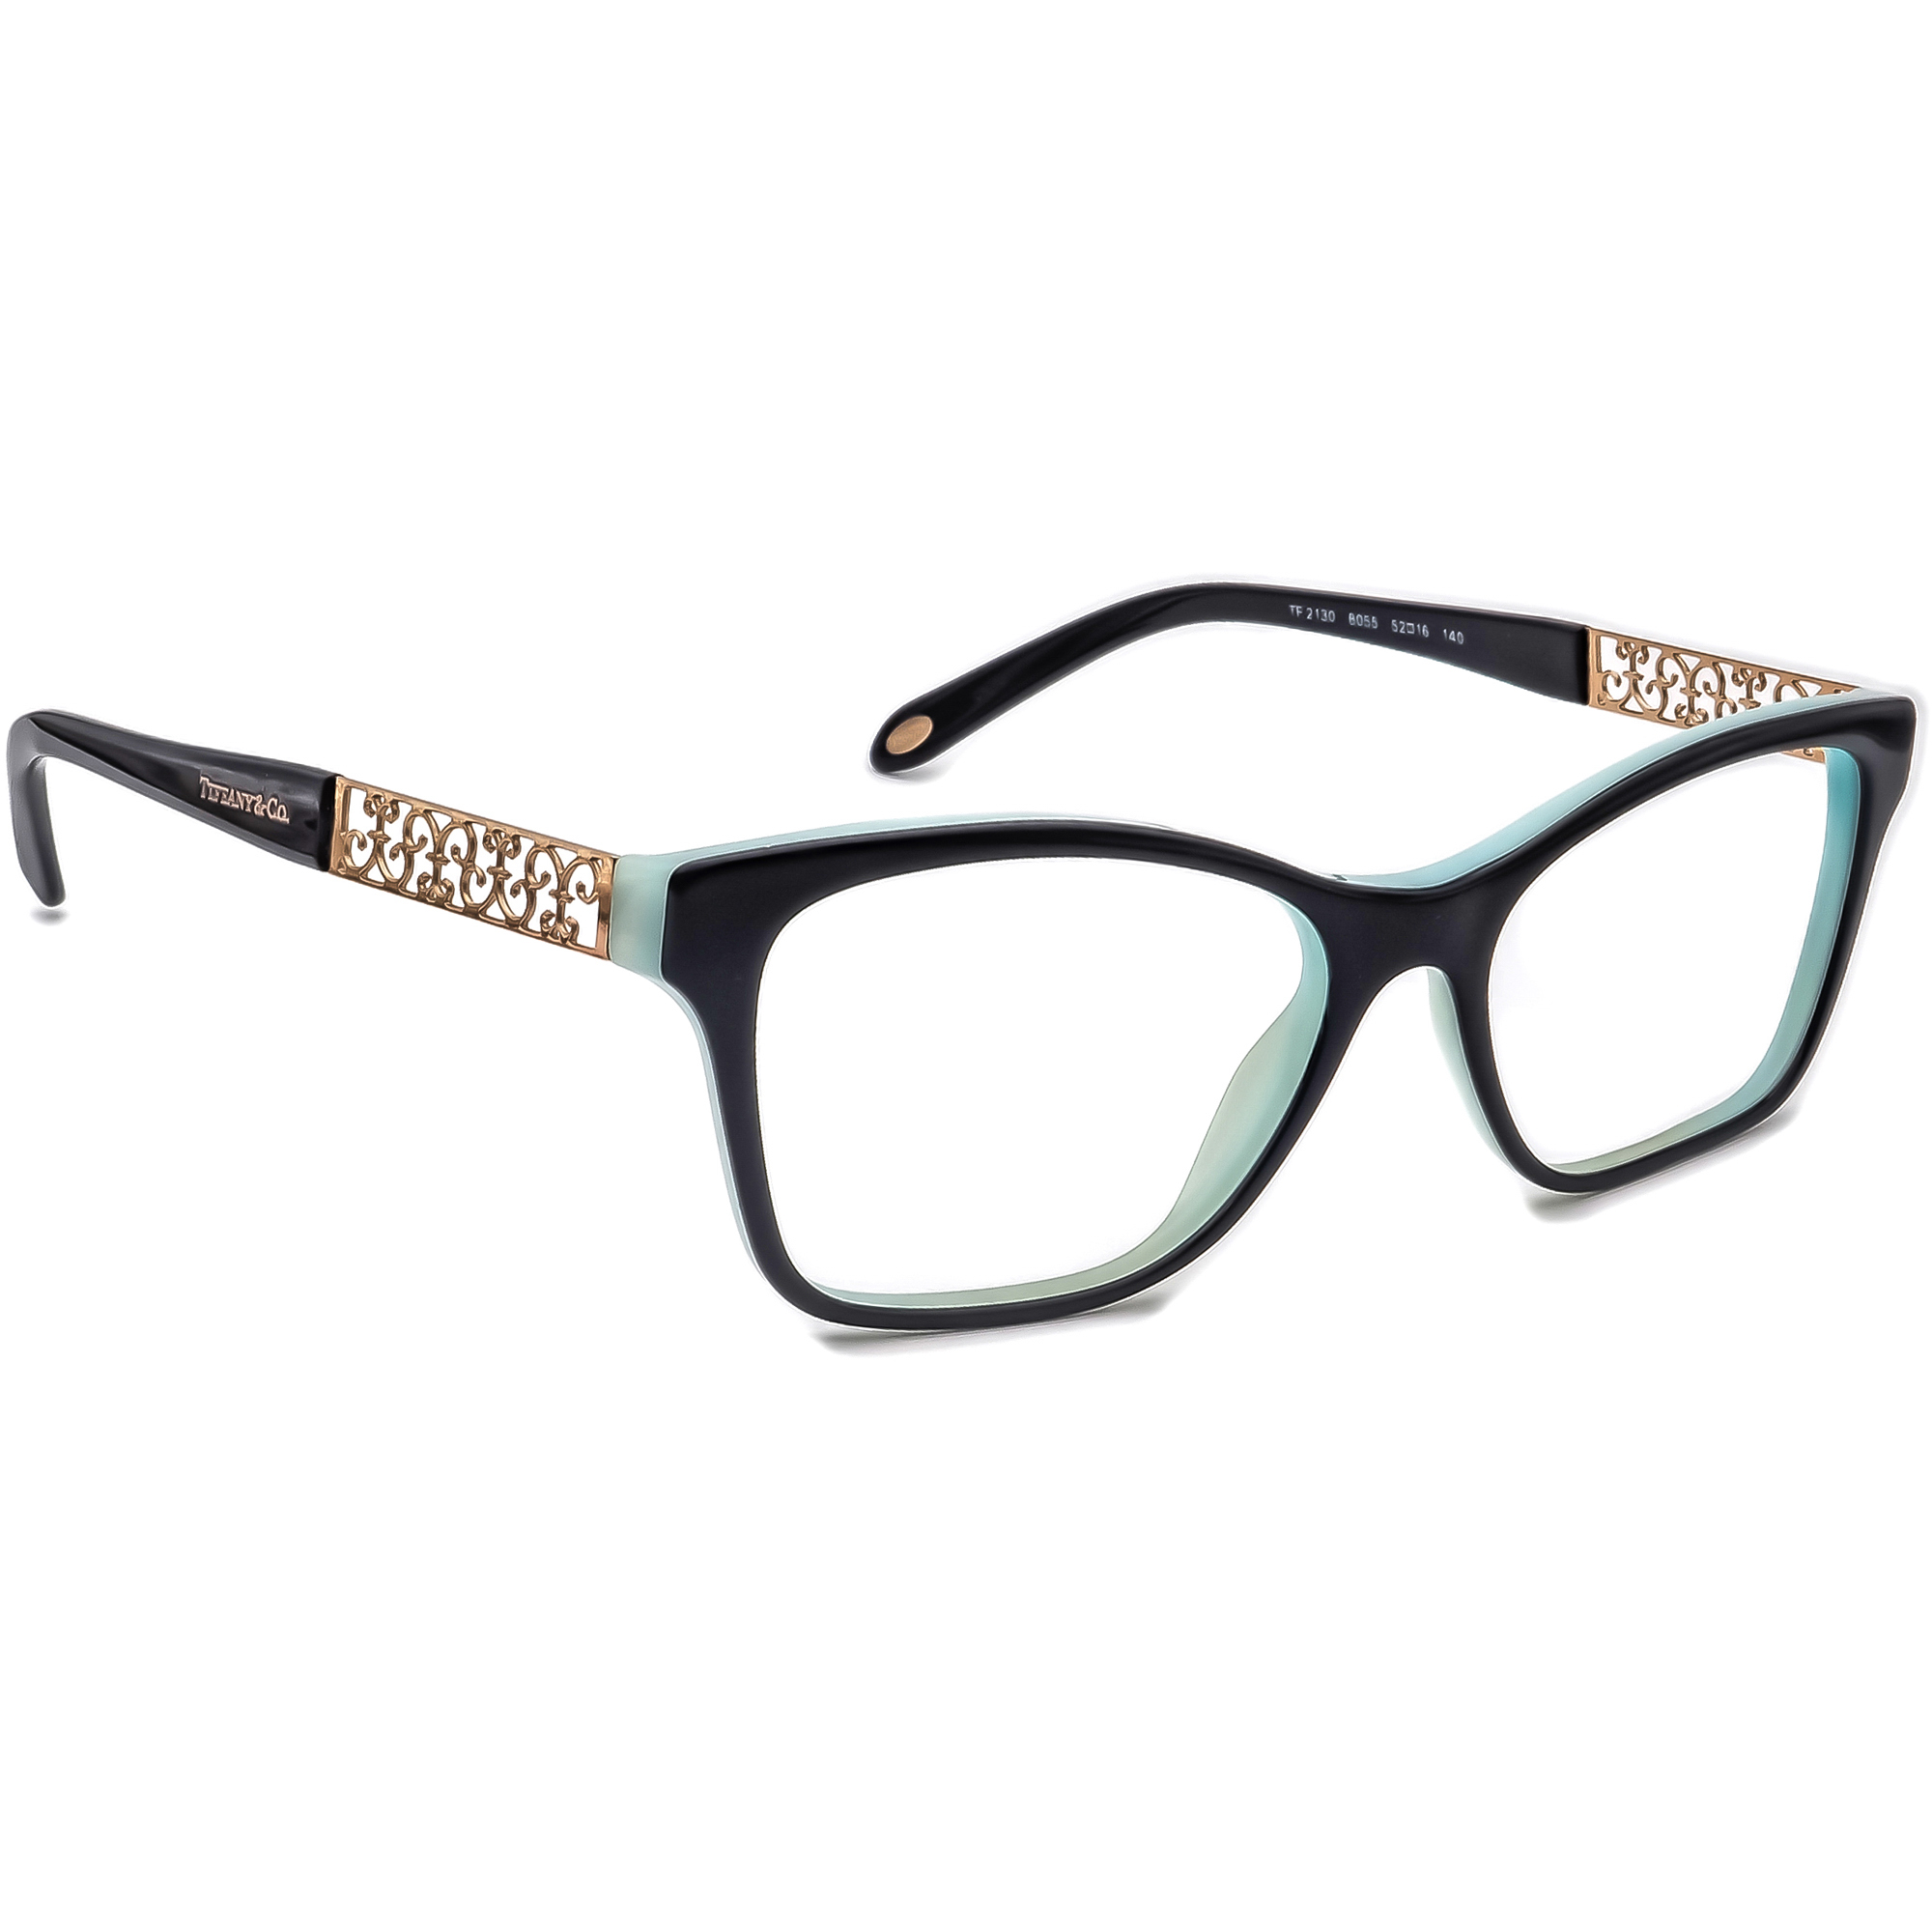 Tiffany & Co. TF 2130 8055 Eyeglasses